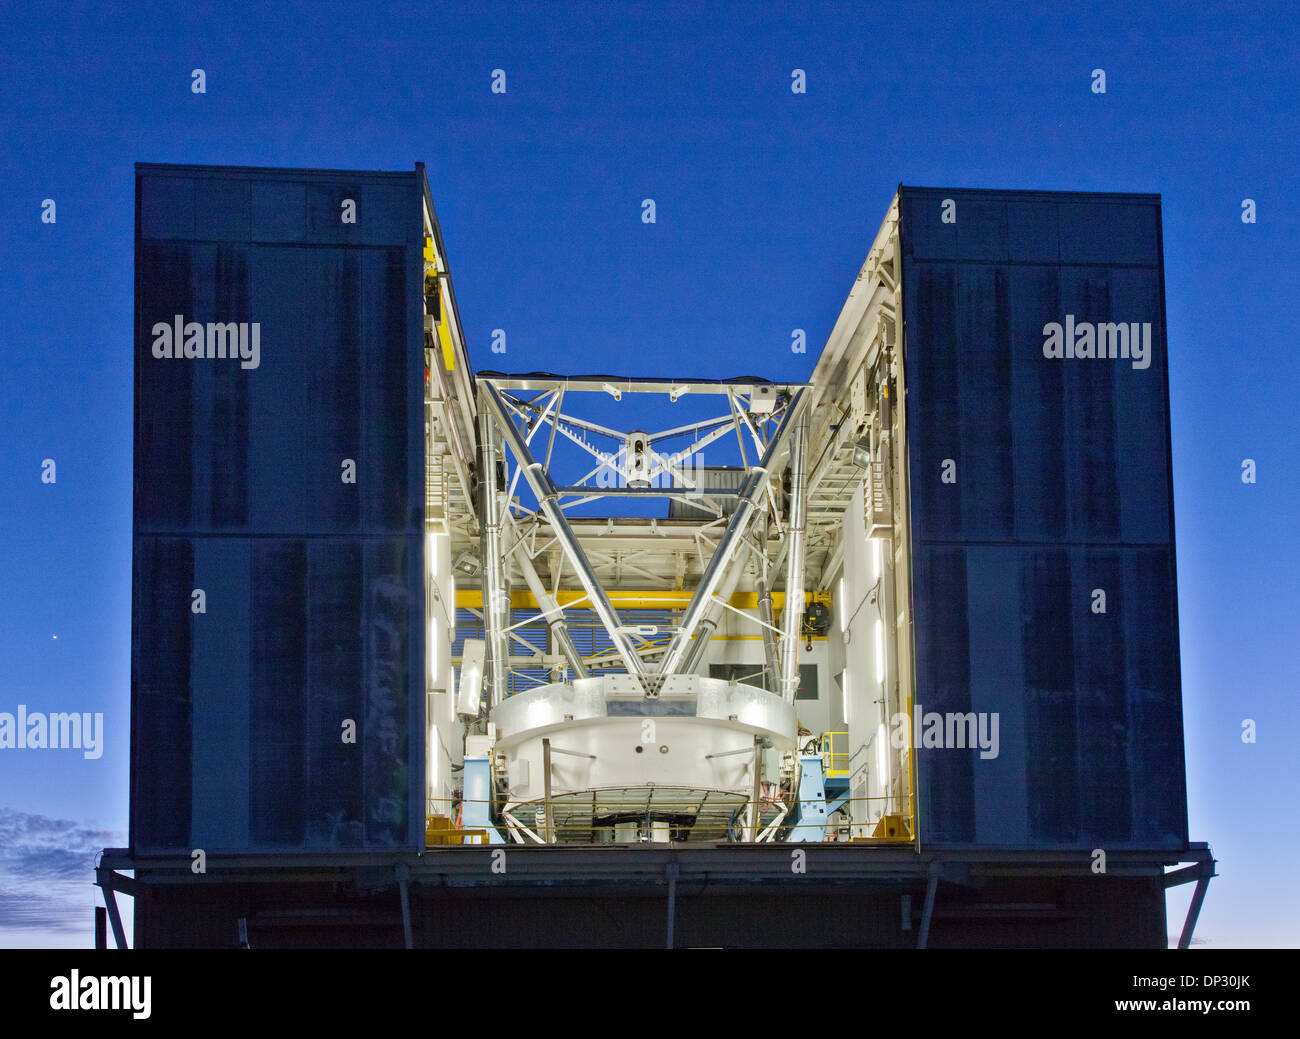 6.5m Optical Telescope, MMT Observatory. - Stock Image